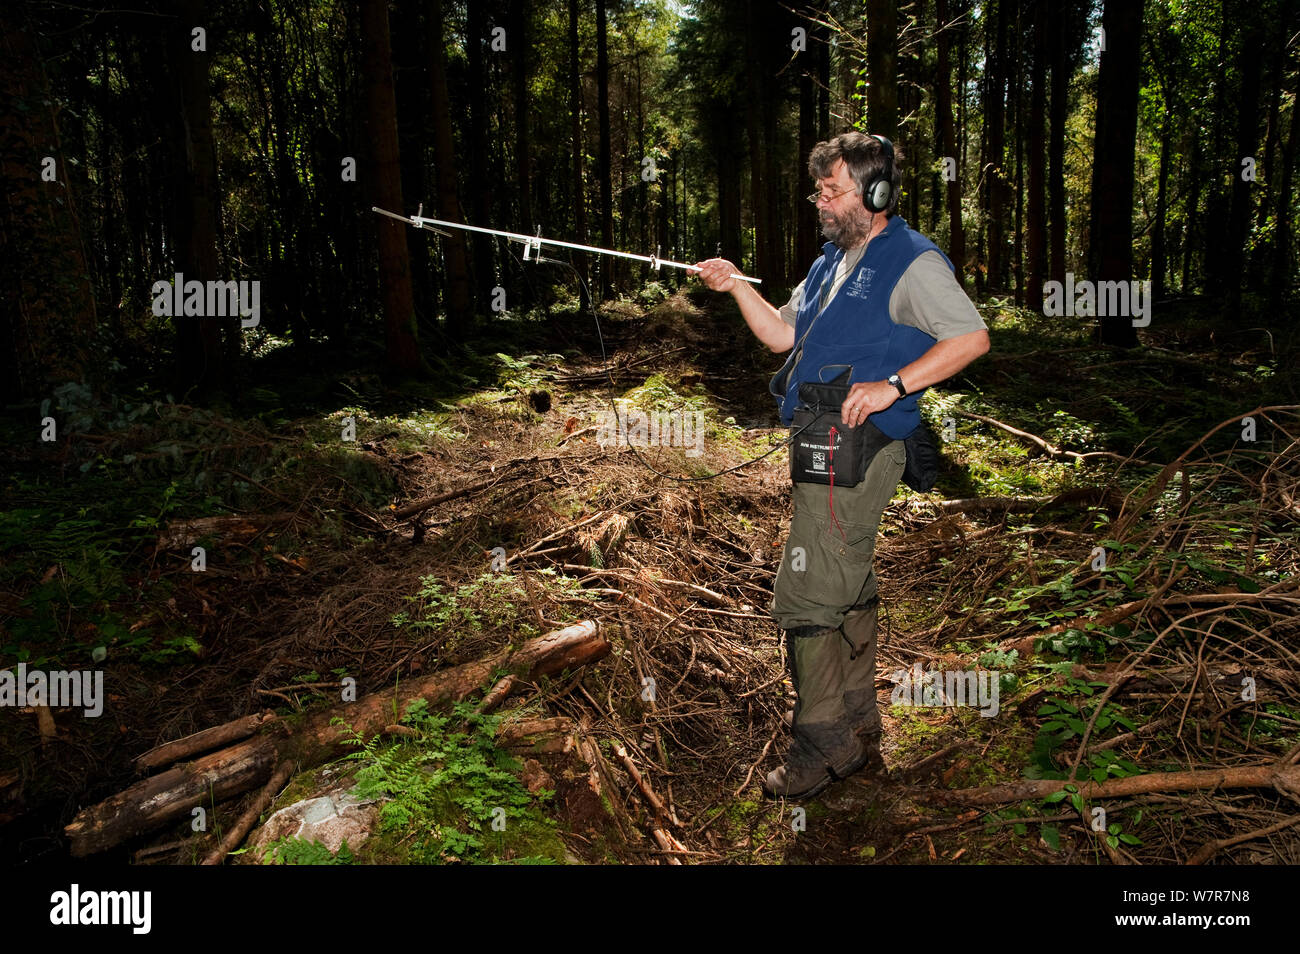 Pete Turner radio tracking Pine Martens (Martes martes) Pine marten research by the Waterford Institute of Technology, Ireland, August 2008 Stock Photo